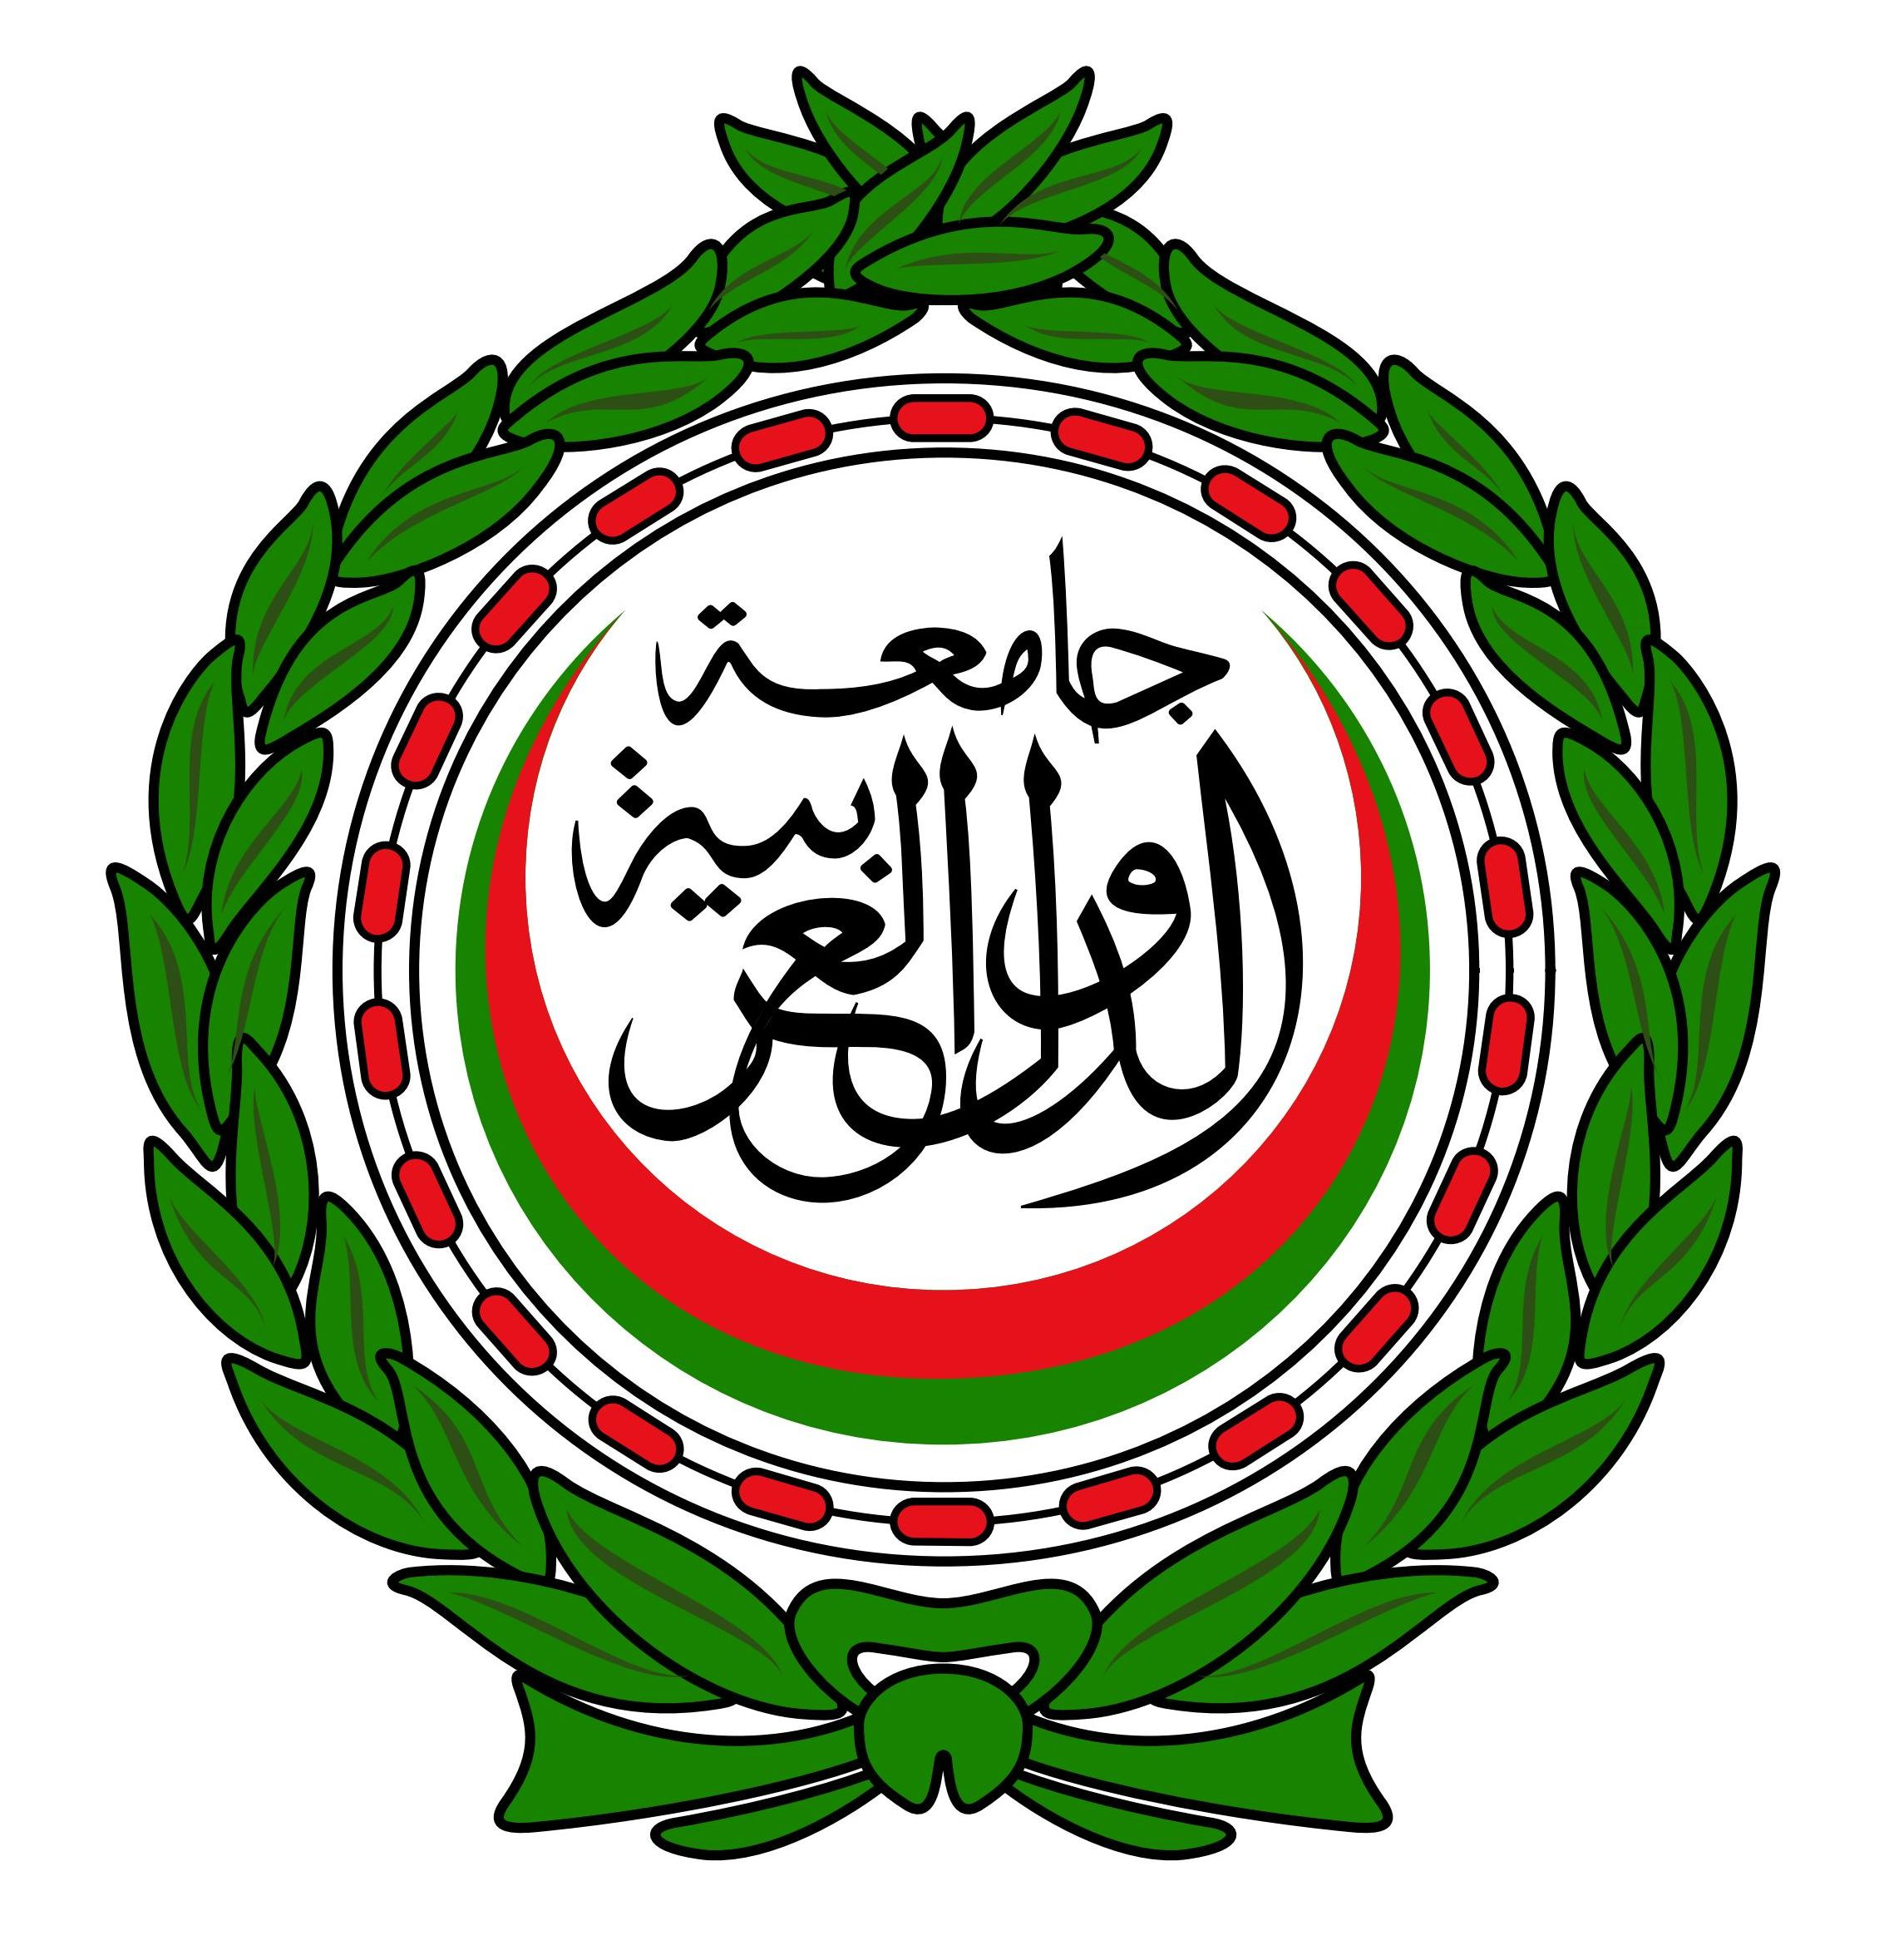 arab league-emblem